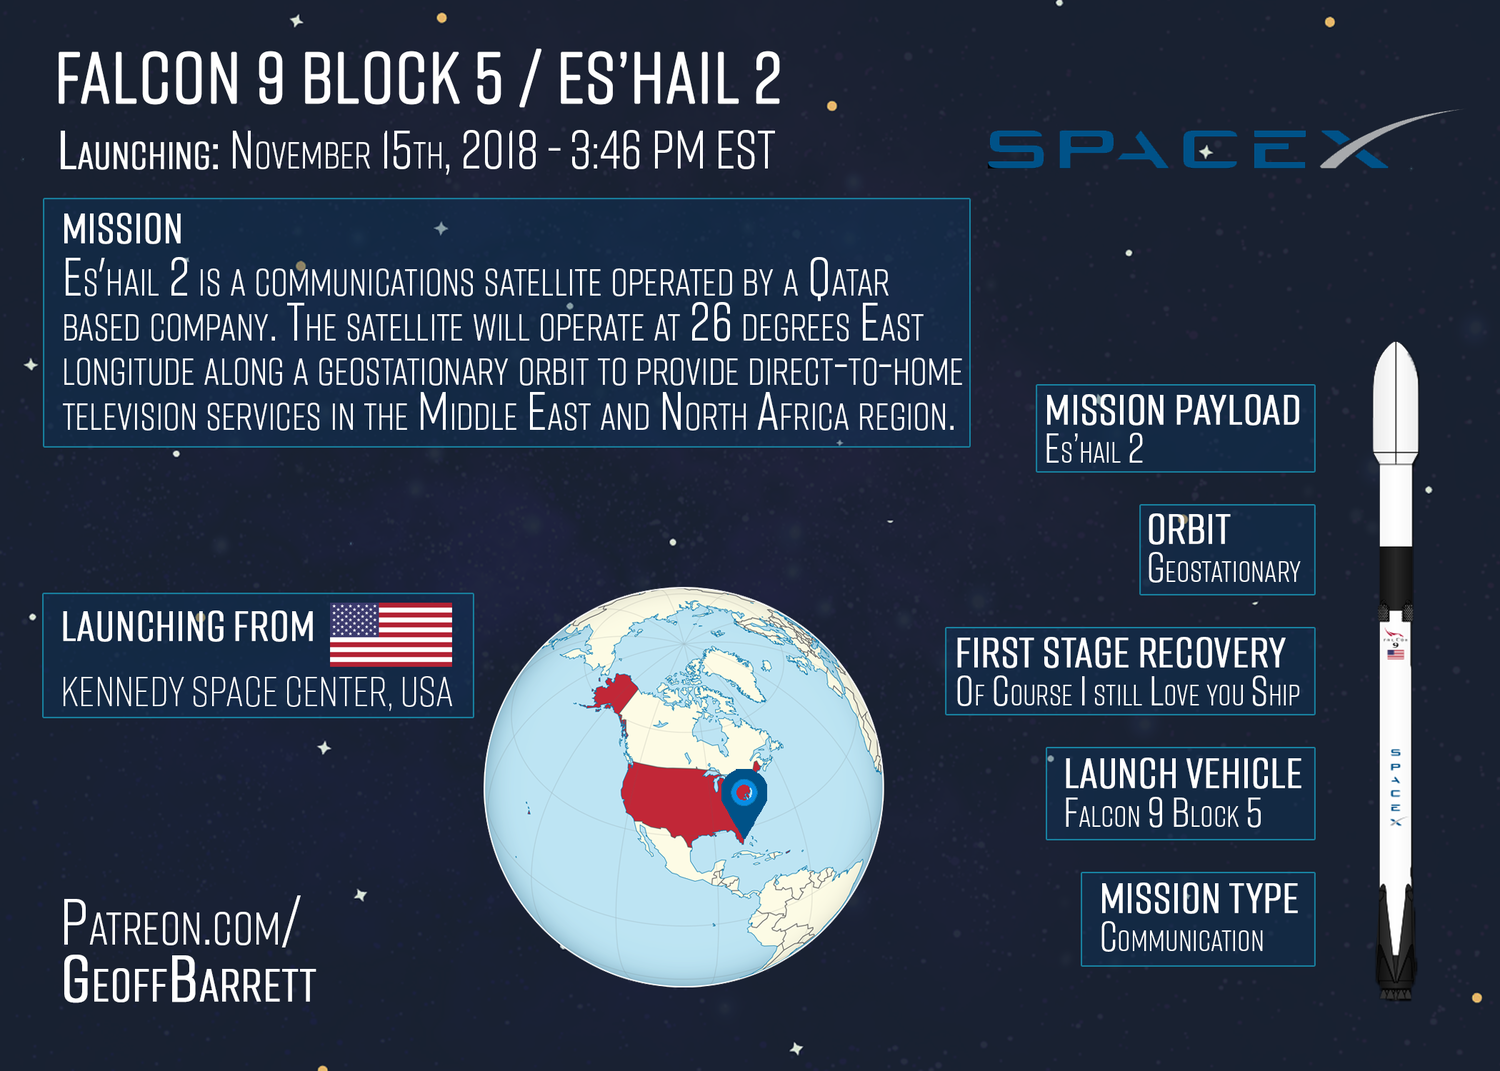 Falcon 9 Block 5 / Es'Hail 2